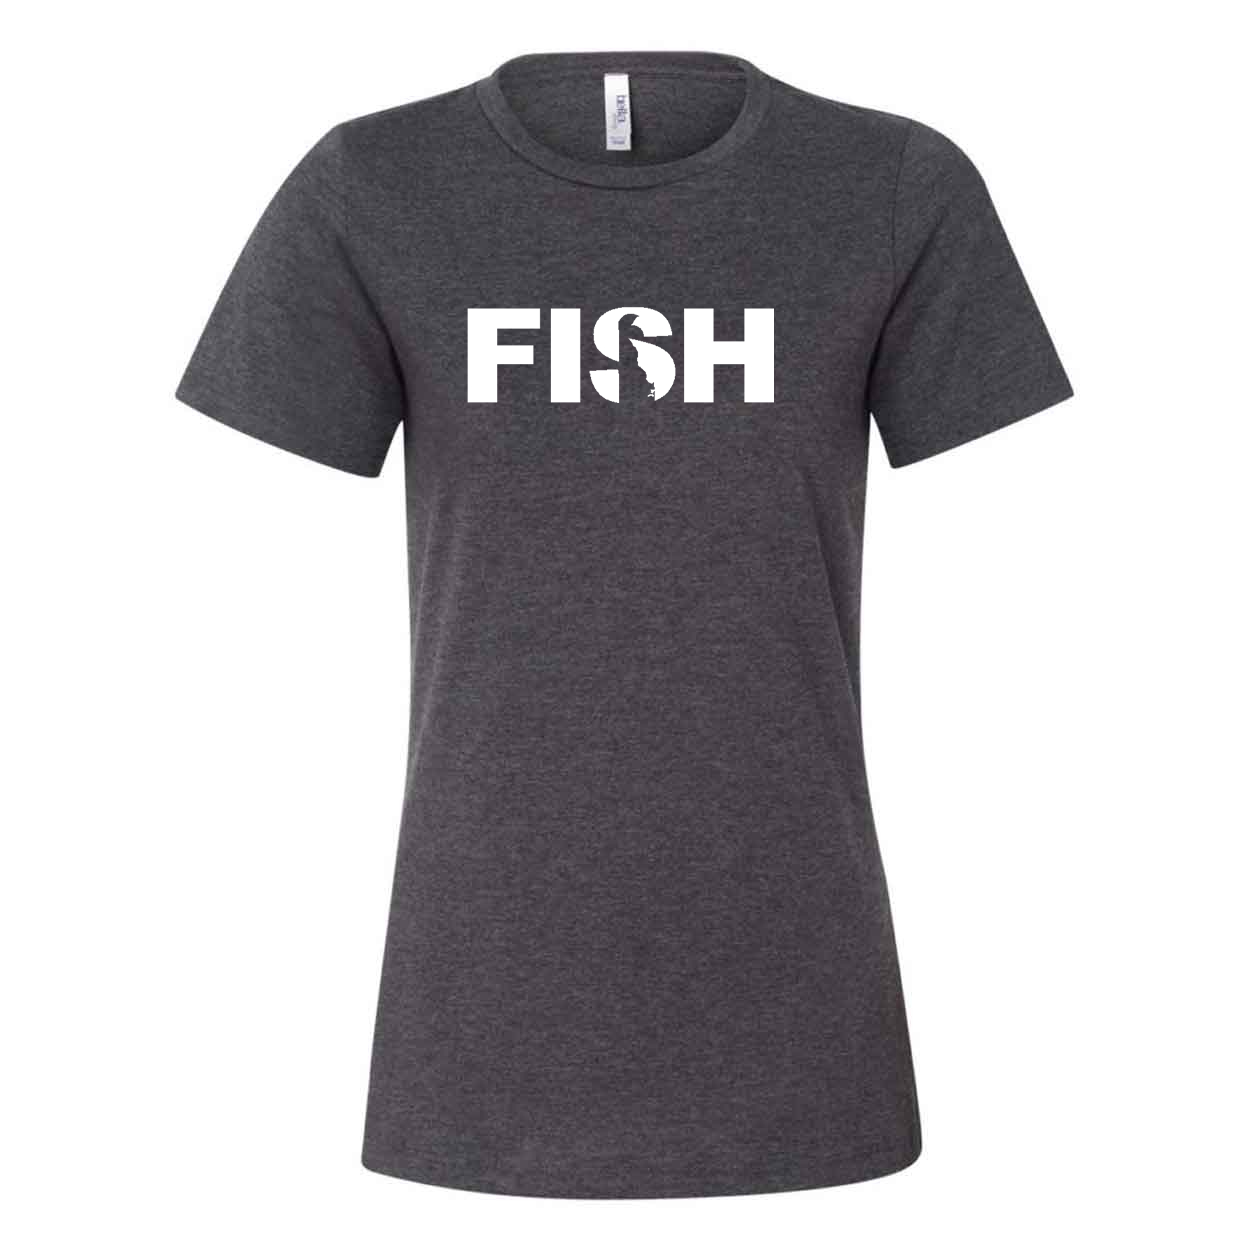 Fish Delaware Classic Women's Relaxed Jersey T-Shirt Dark Gray Heather (White Logo)